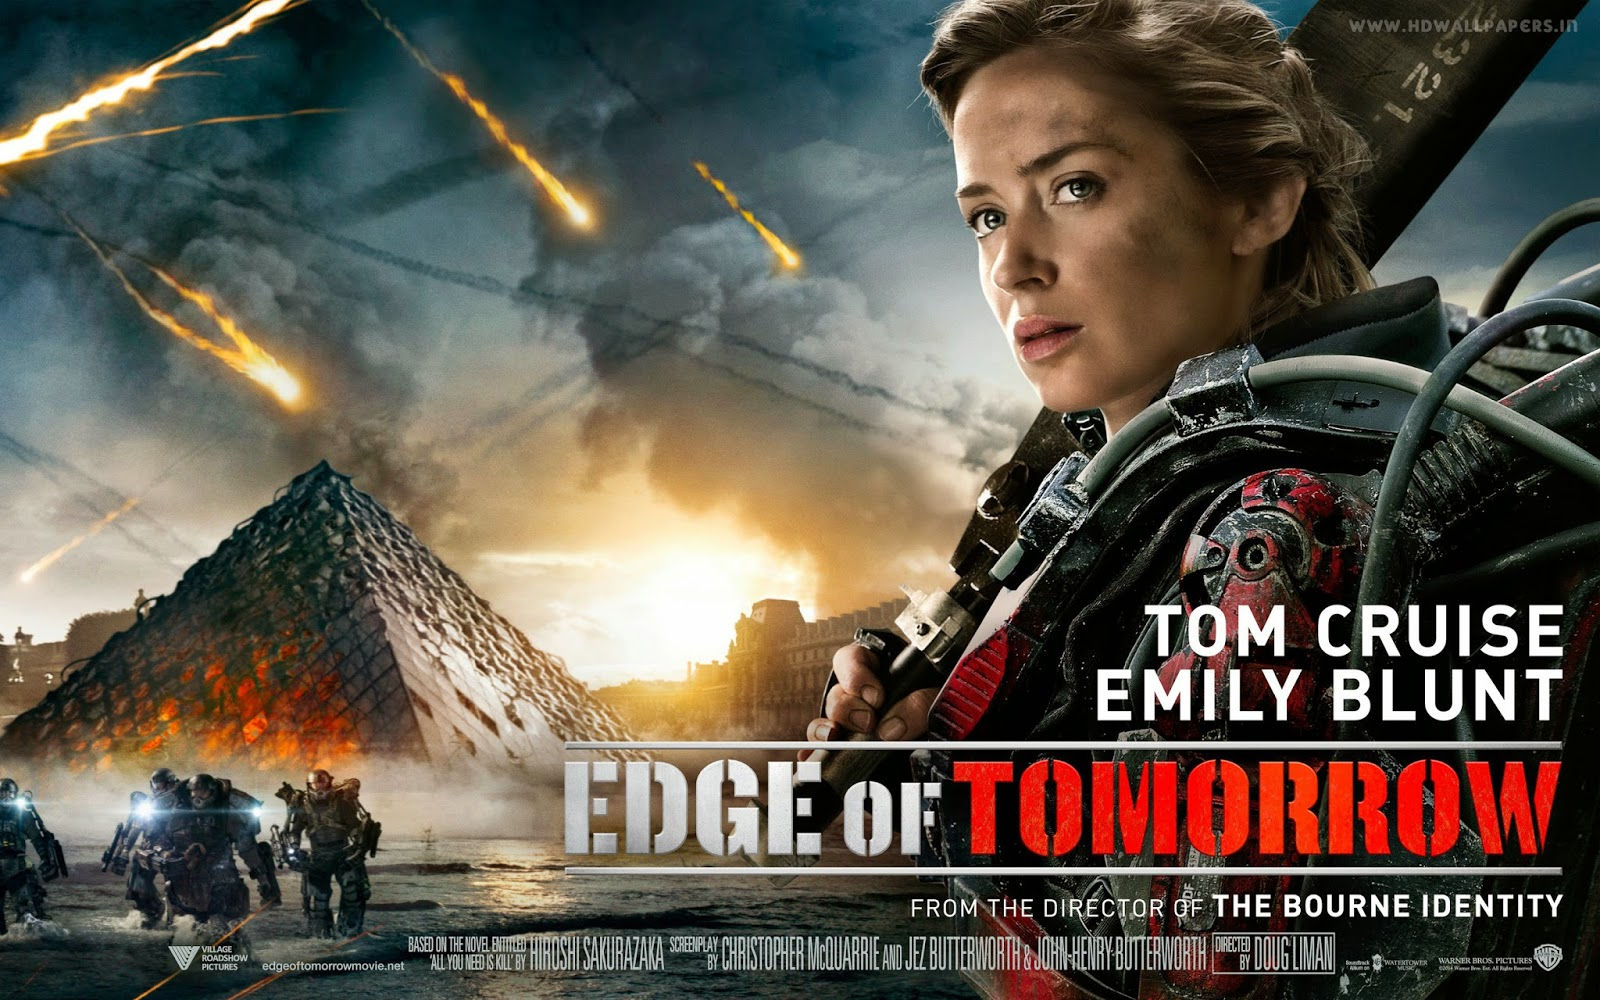 edge of tomorrow movie wallpapers - 2015 Edge of Tomorrow Wallpapers HD Wallpapers